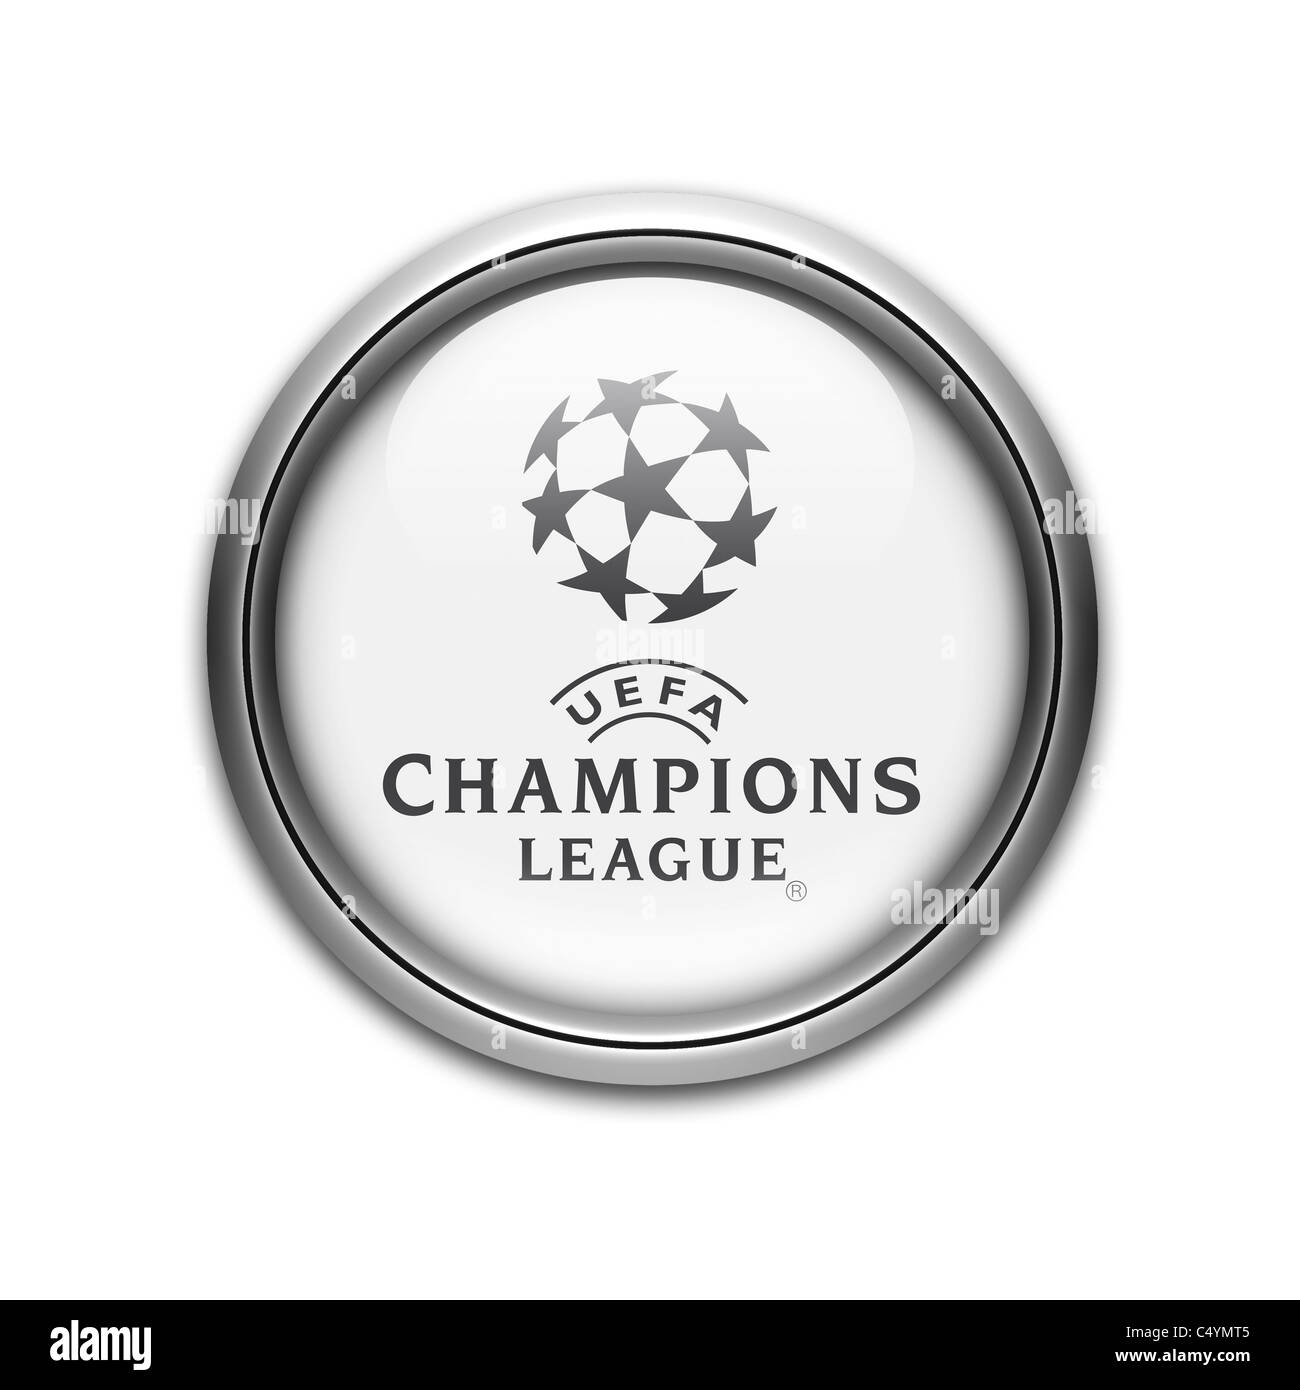 Champions league uefa logo flag symbol icon stock photo 37488421 champions league uefa logo flag symbol icon altavistaventures Image collections